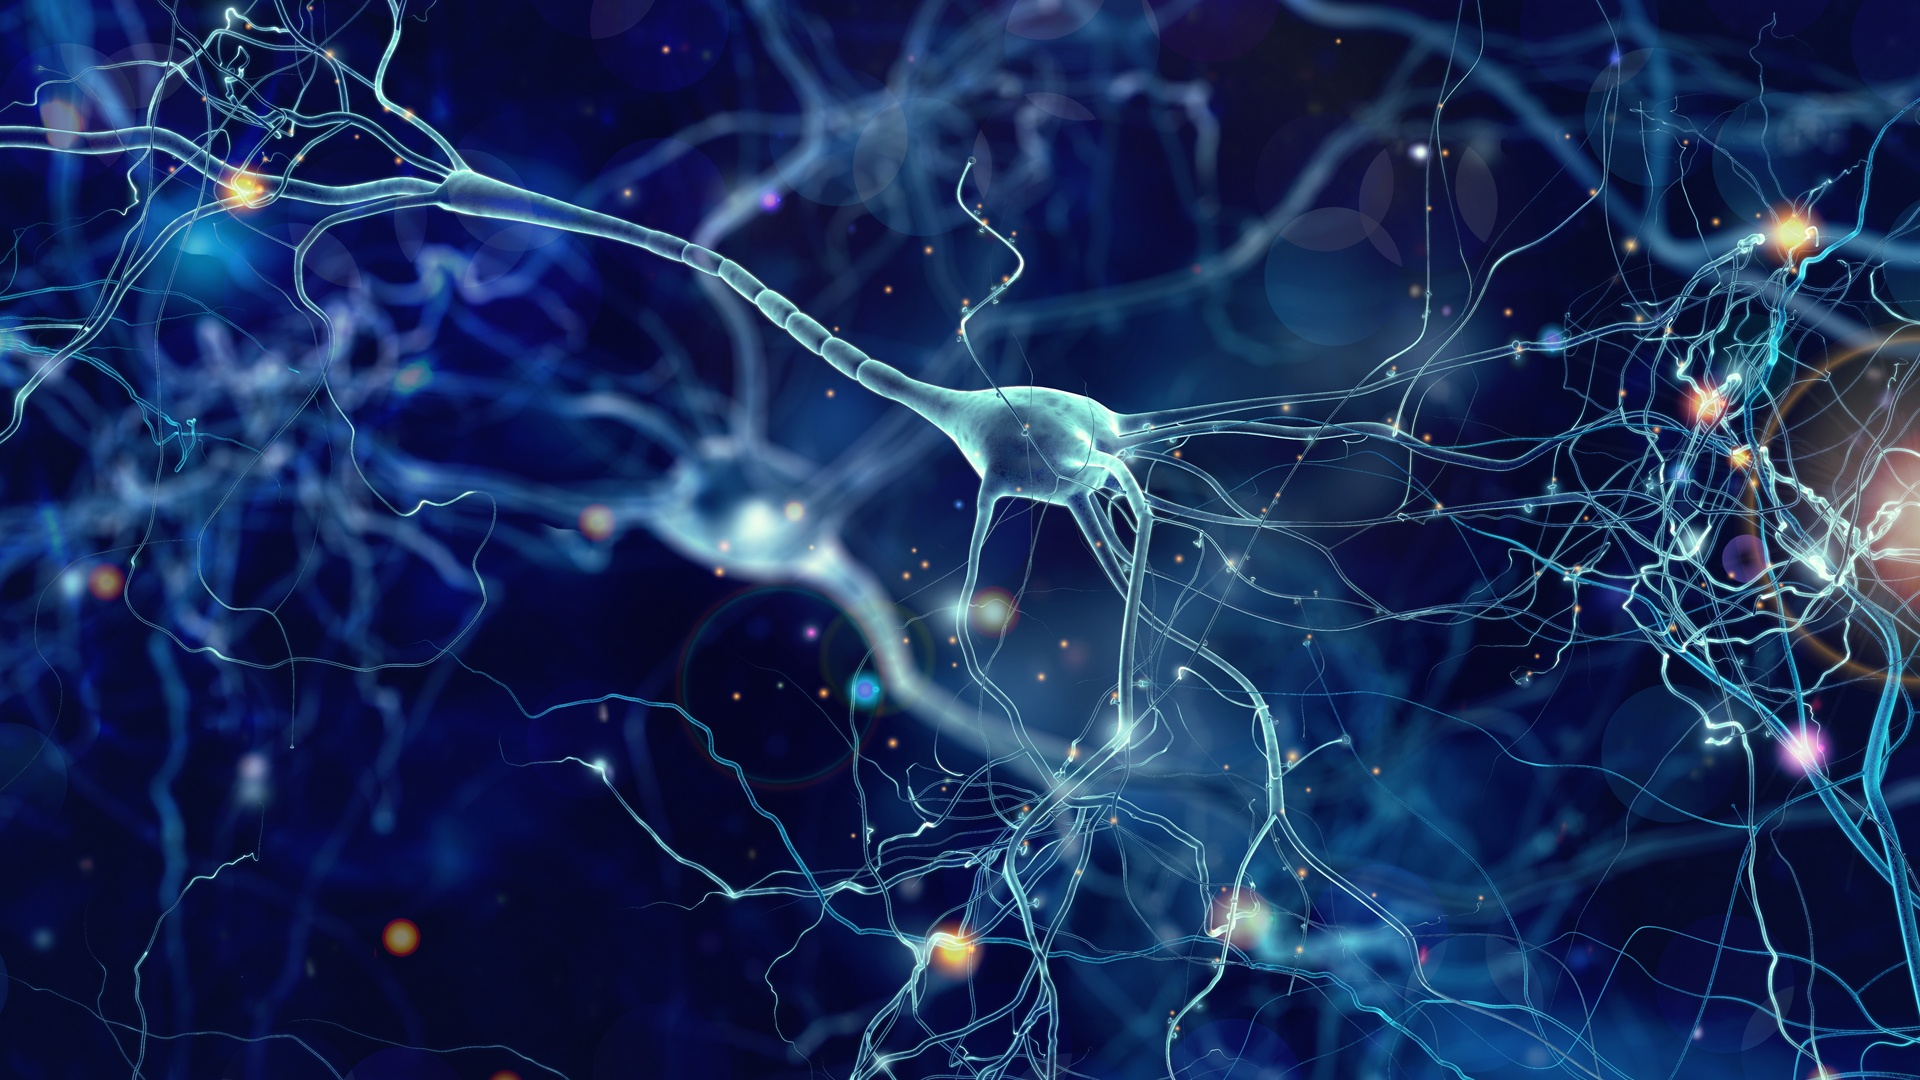 Neurons(cropped).jpg